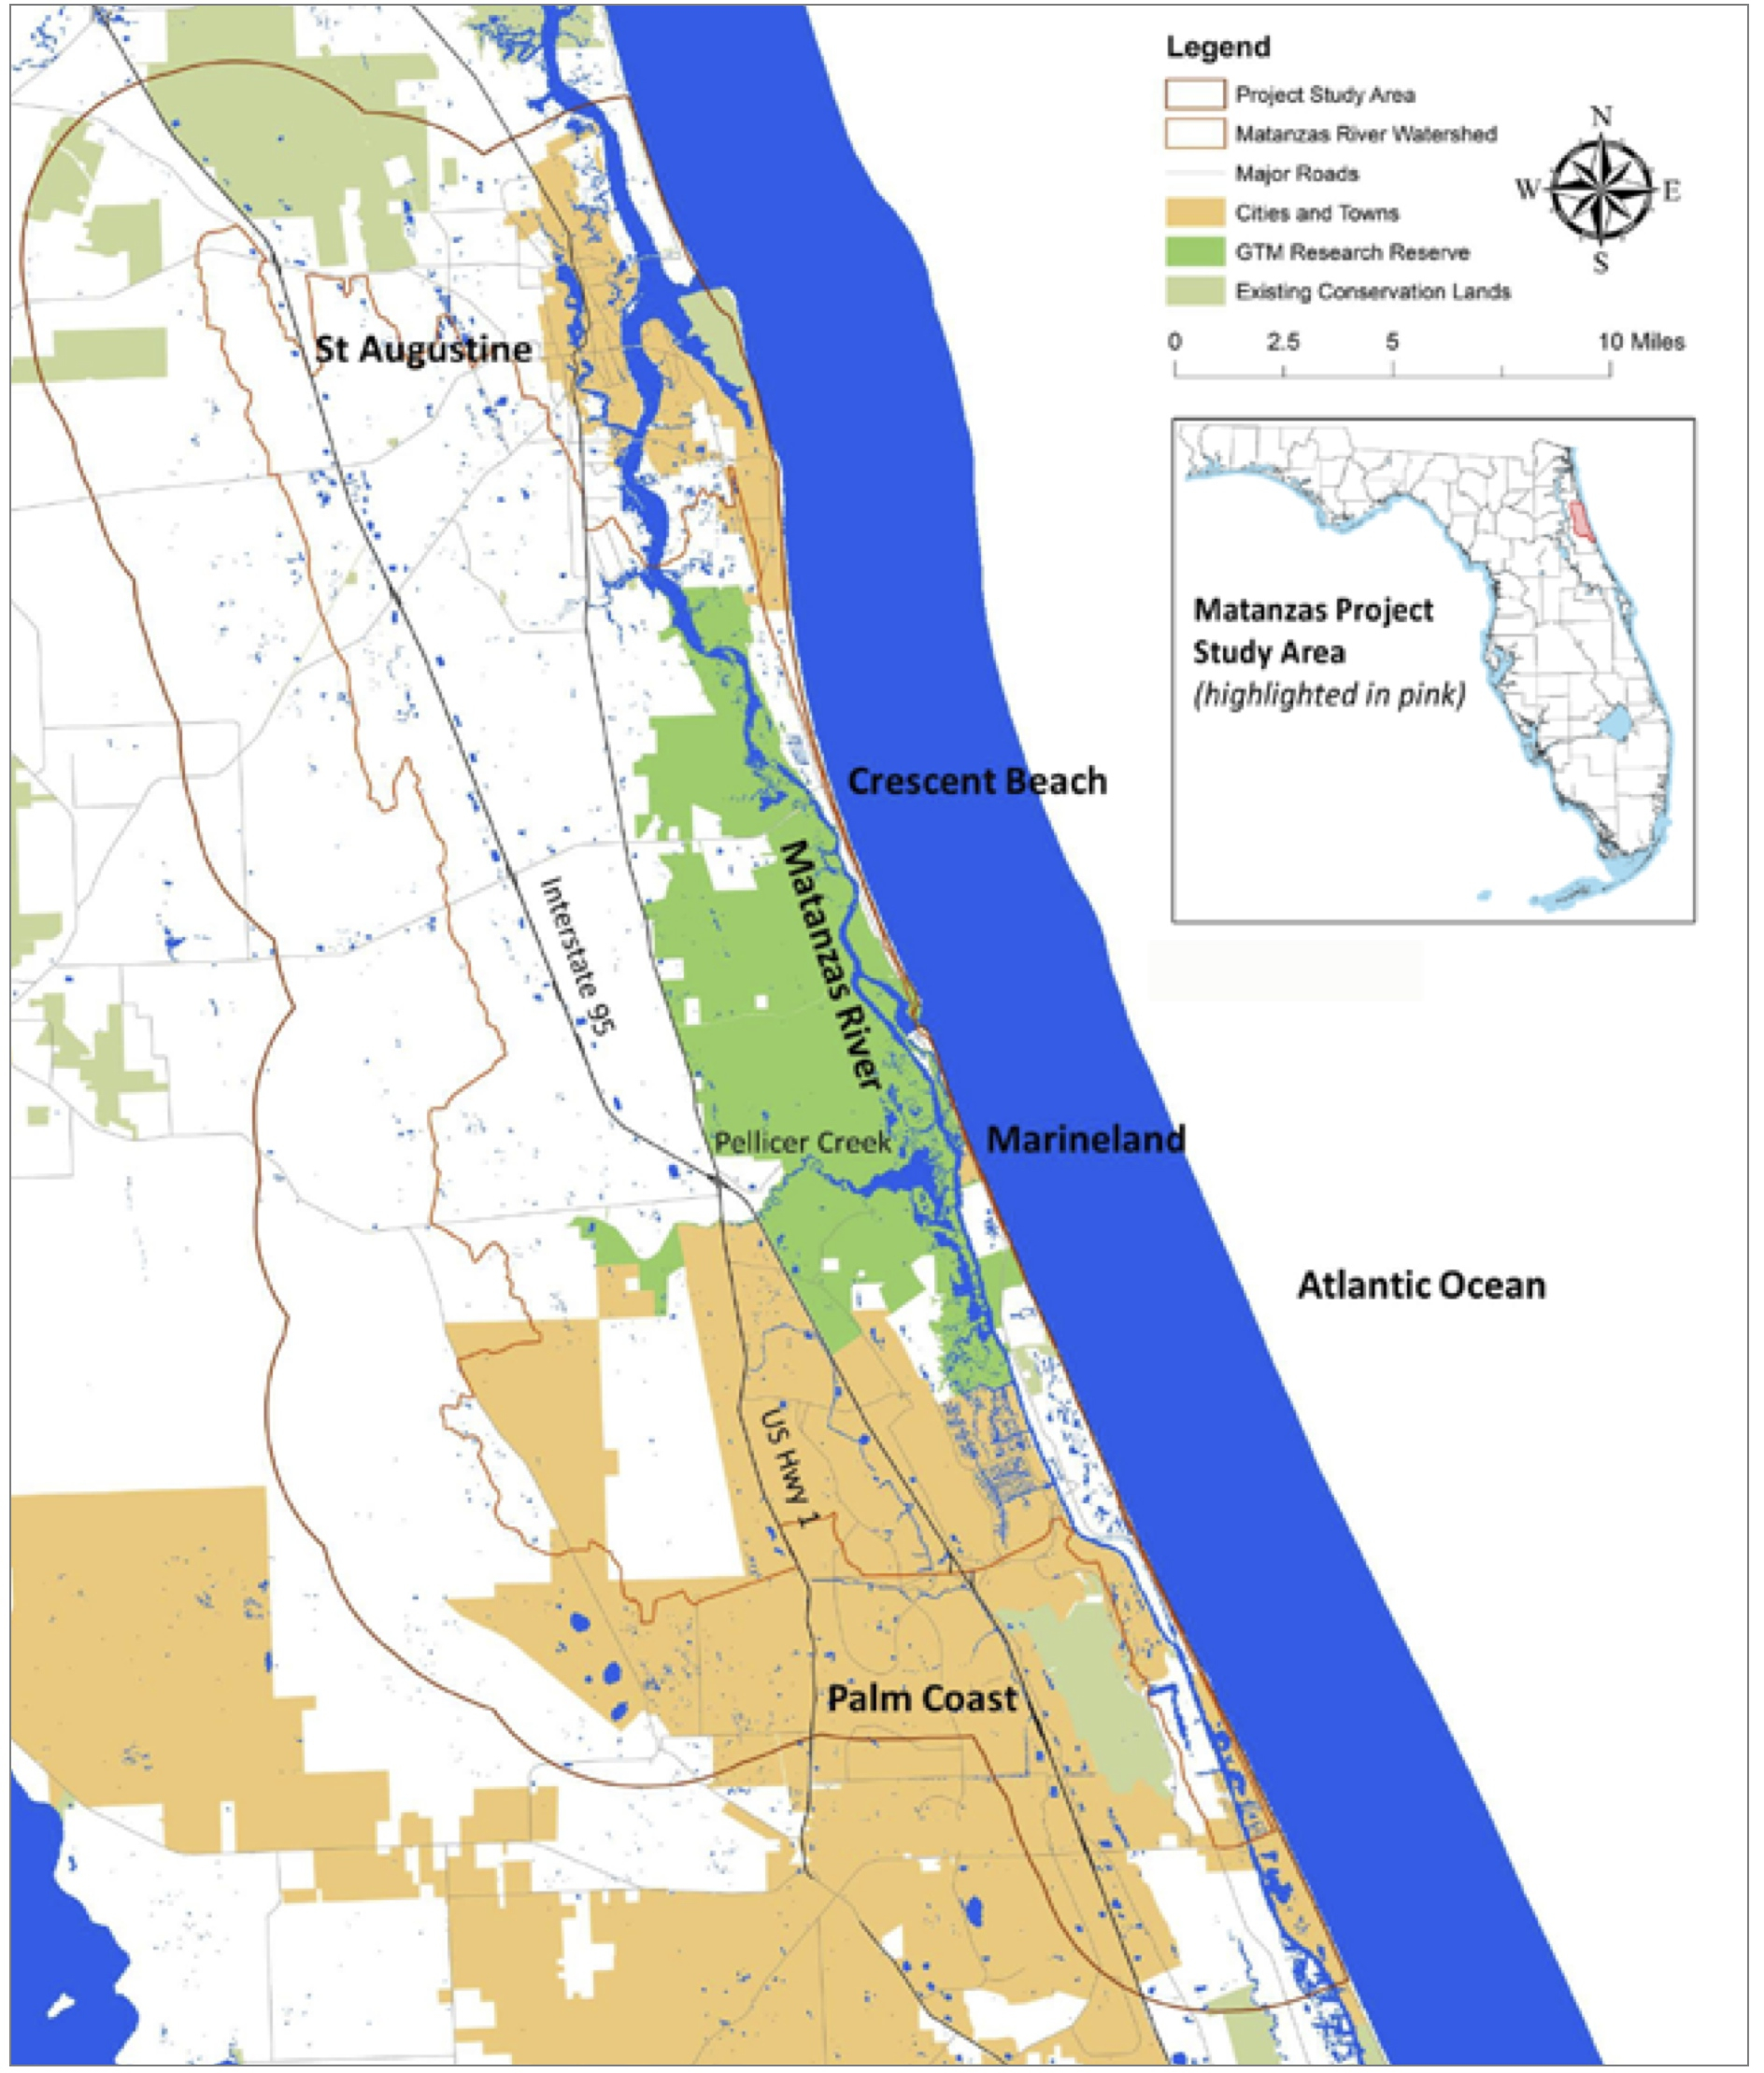 Planning For Sea Level Rise In The Matanzas Basin A Project Led - Florida map sea level rise